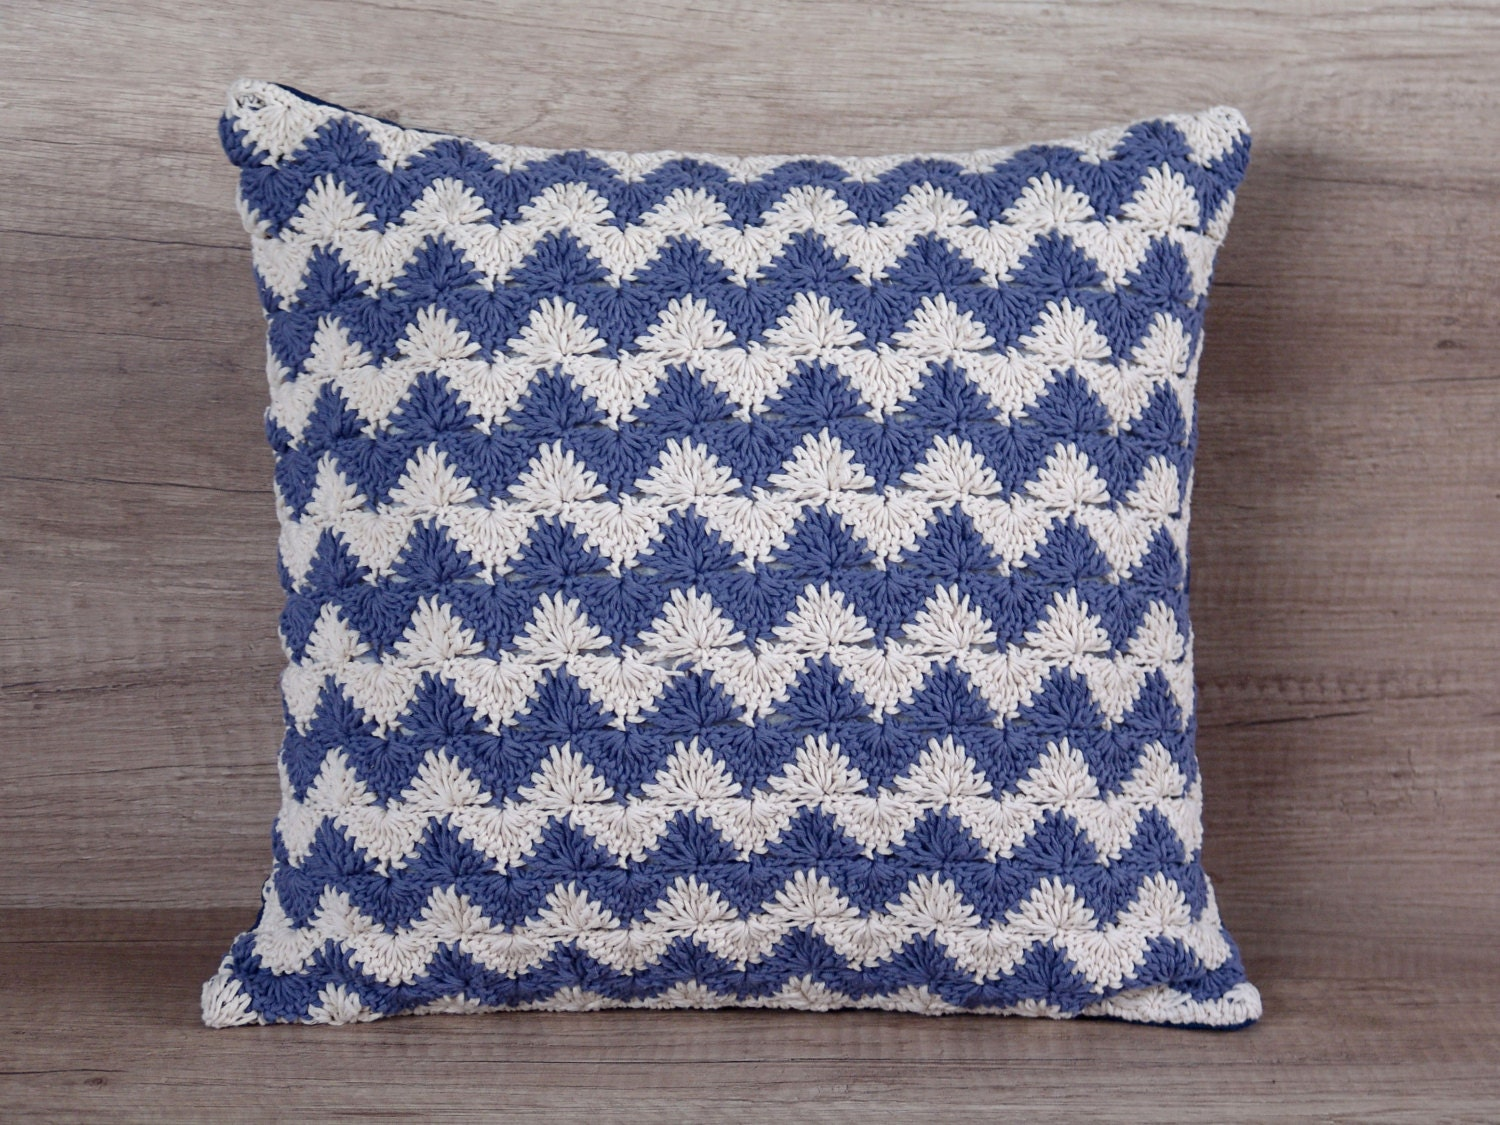 Throw Pillows With Covers : Crochet pillow navy throw pillow covers euro sham chevron